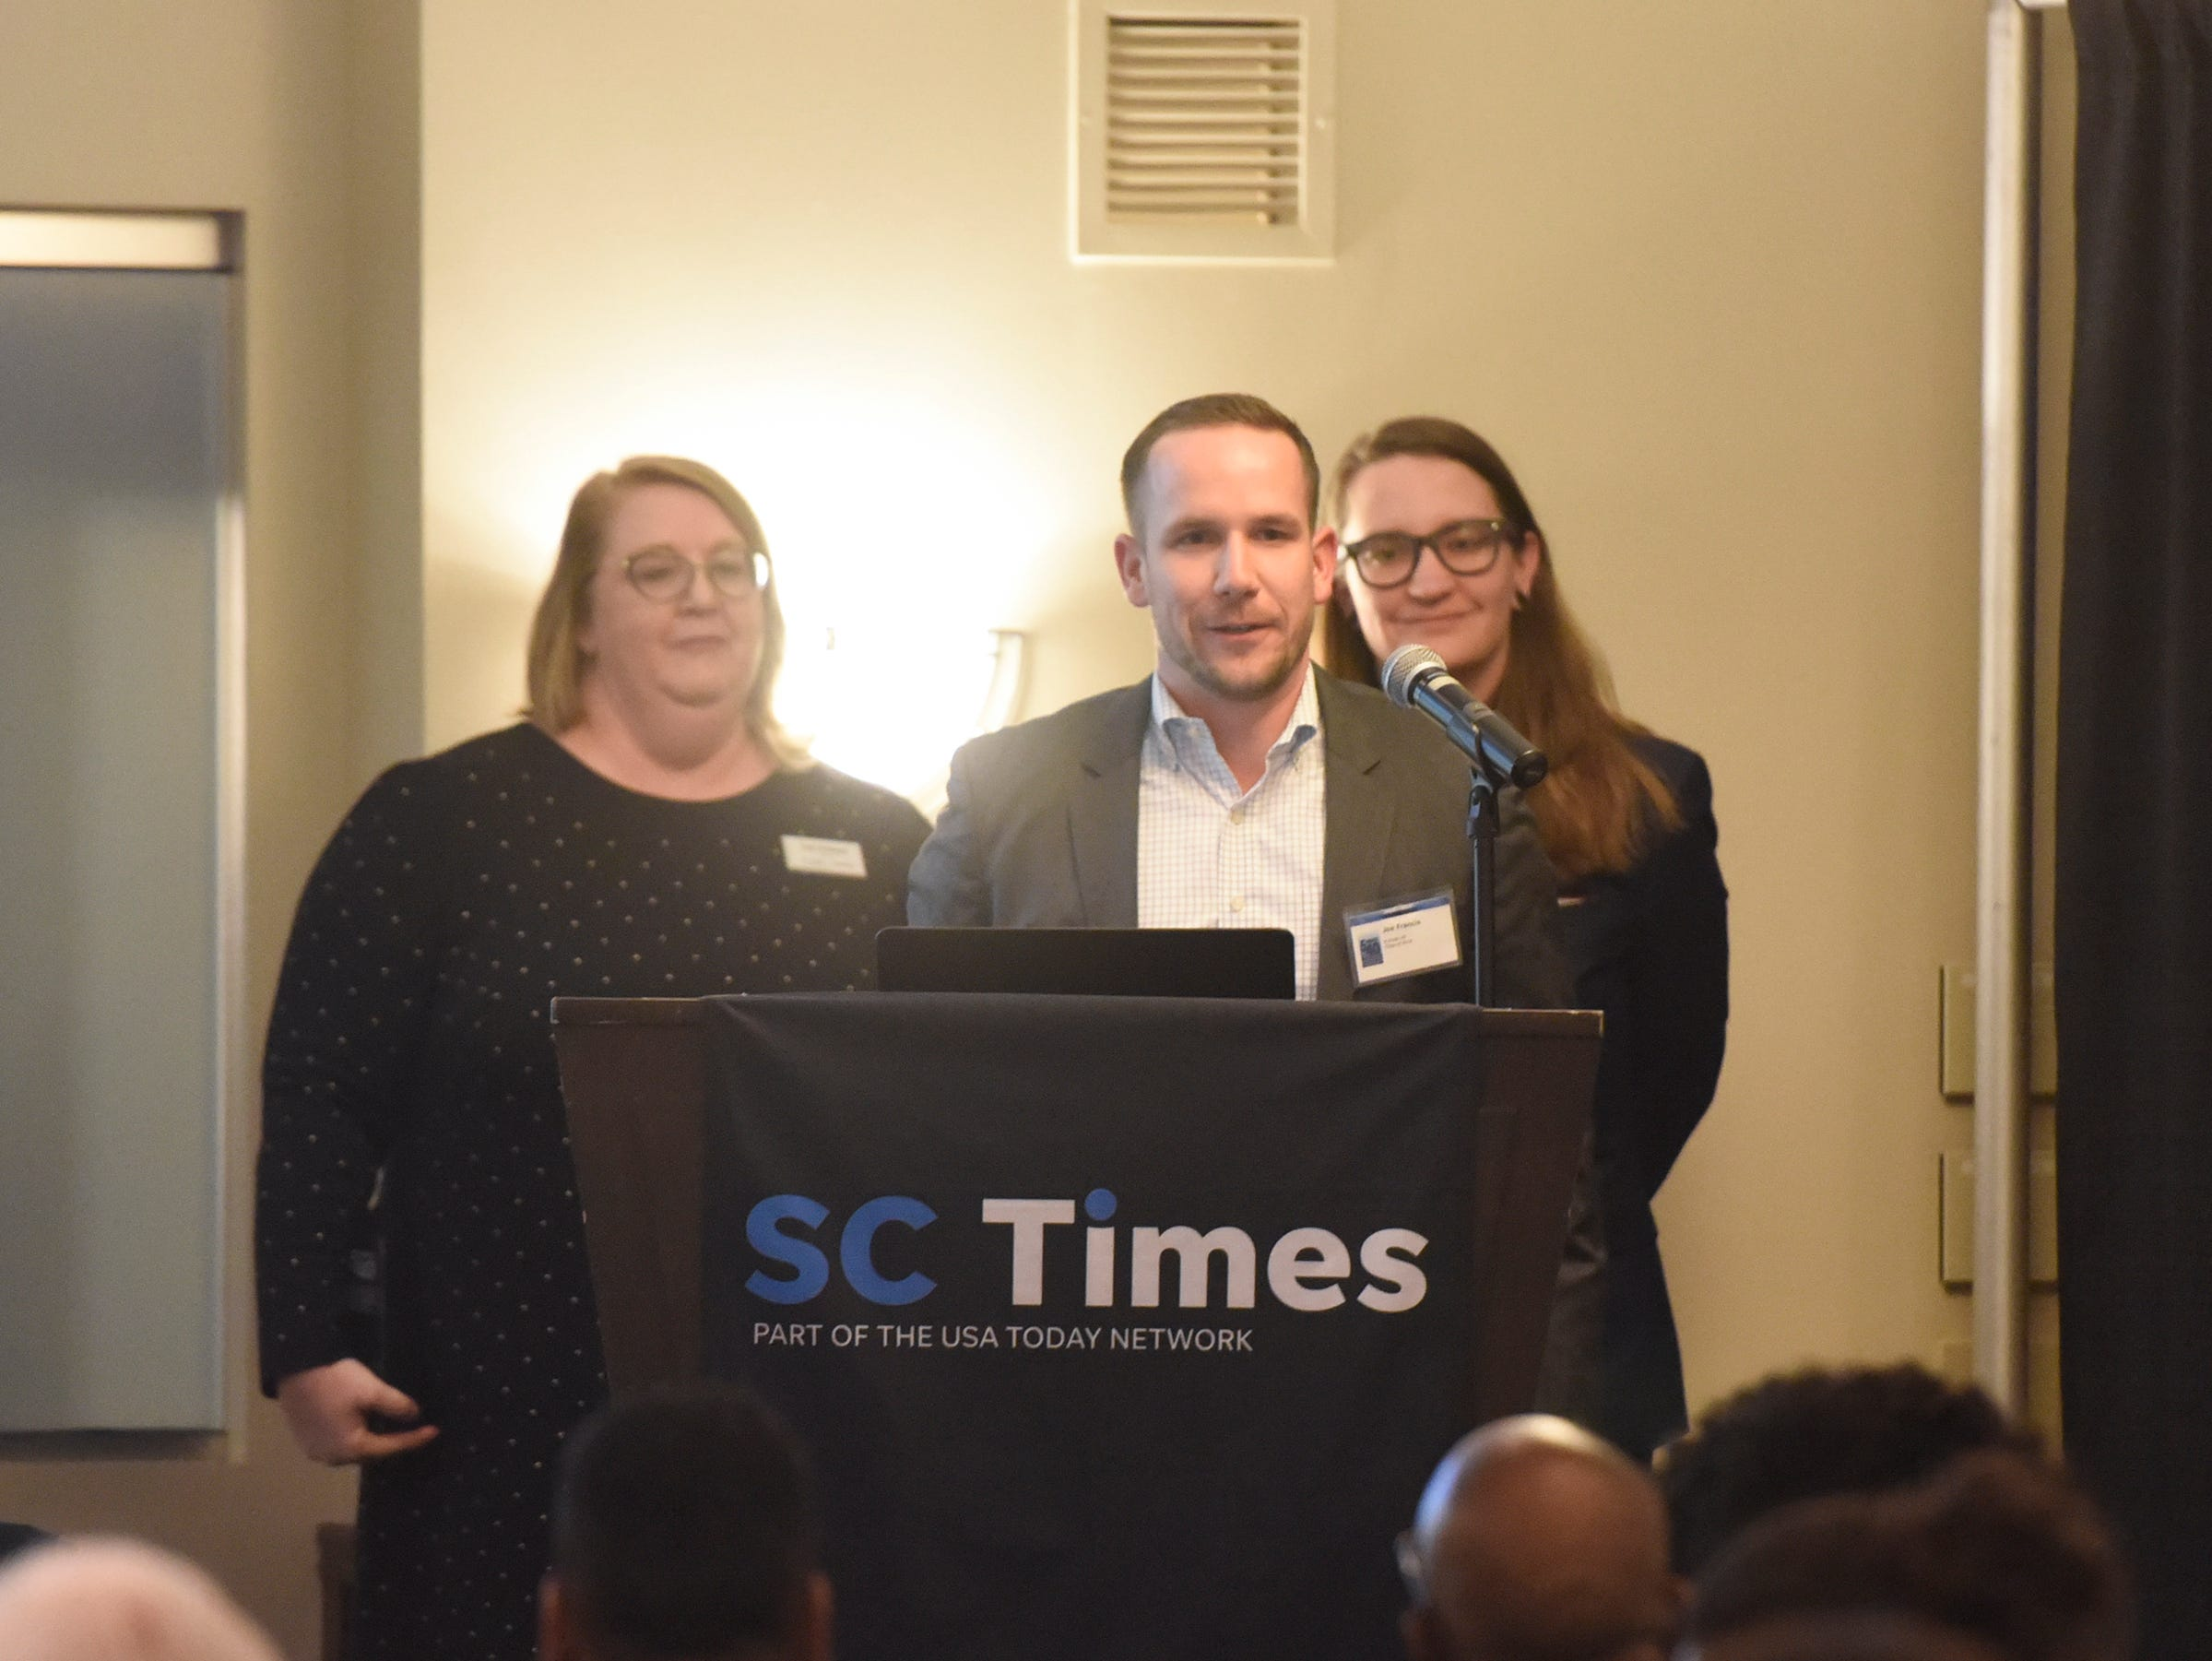 Joe Francis speaks after receiving his award during the 5 Under 40 Awards program Tuesday, Jan. 15, in St. Cloud.